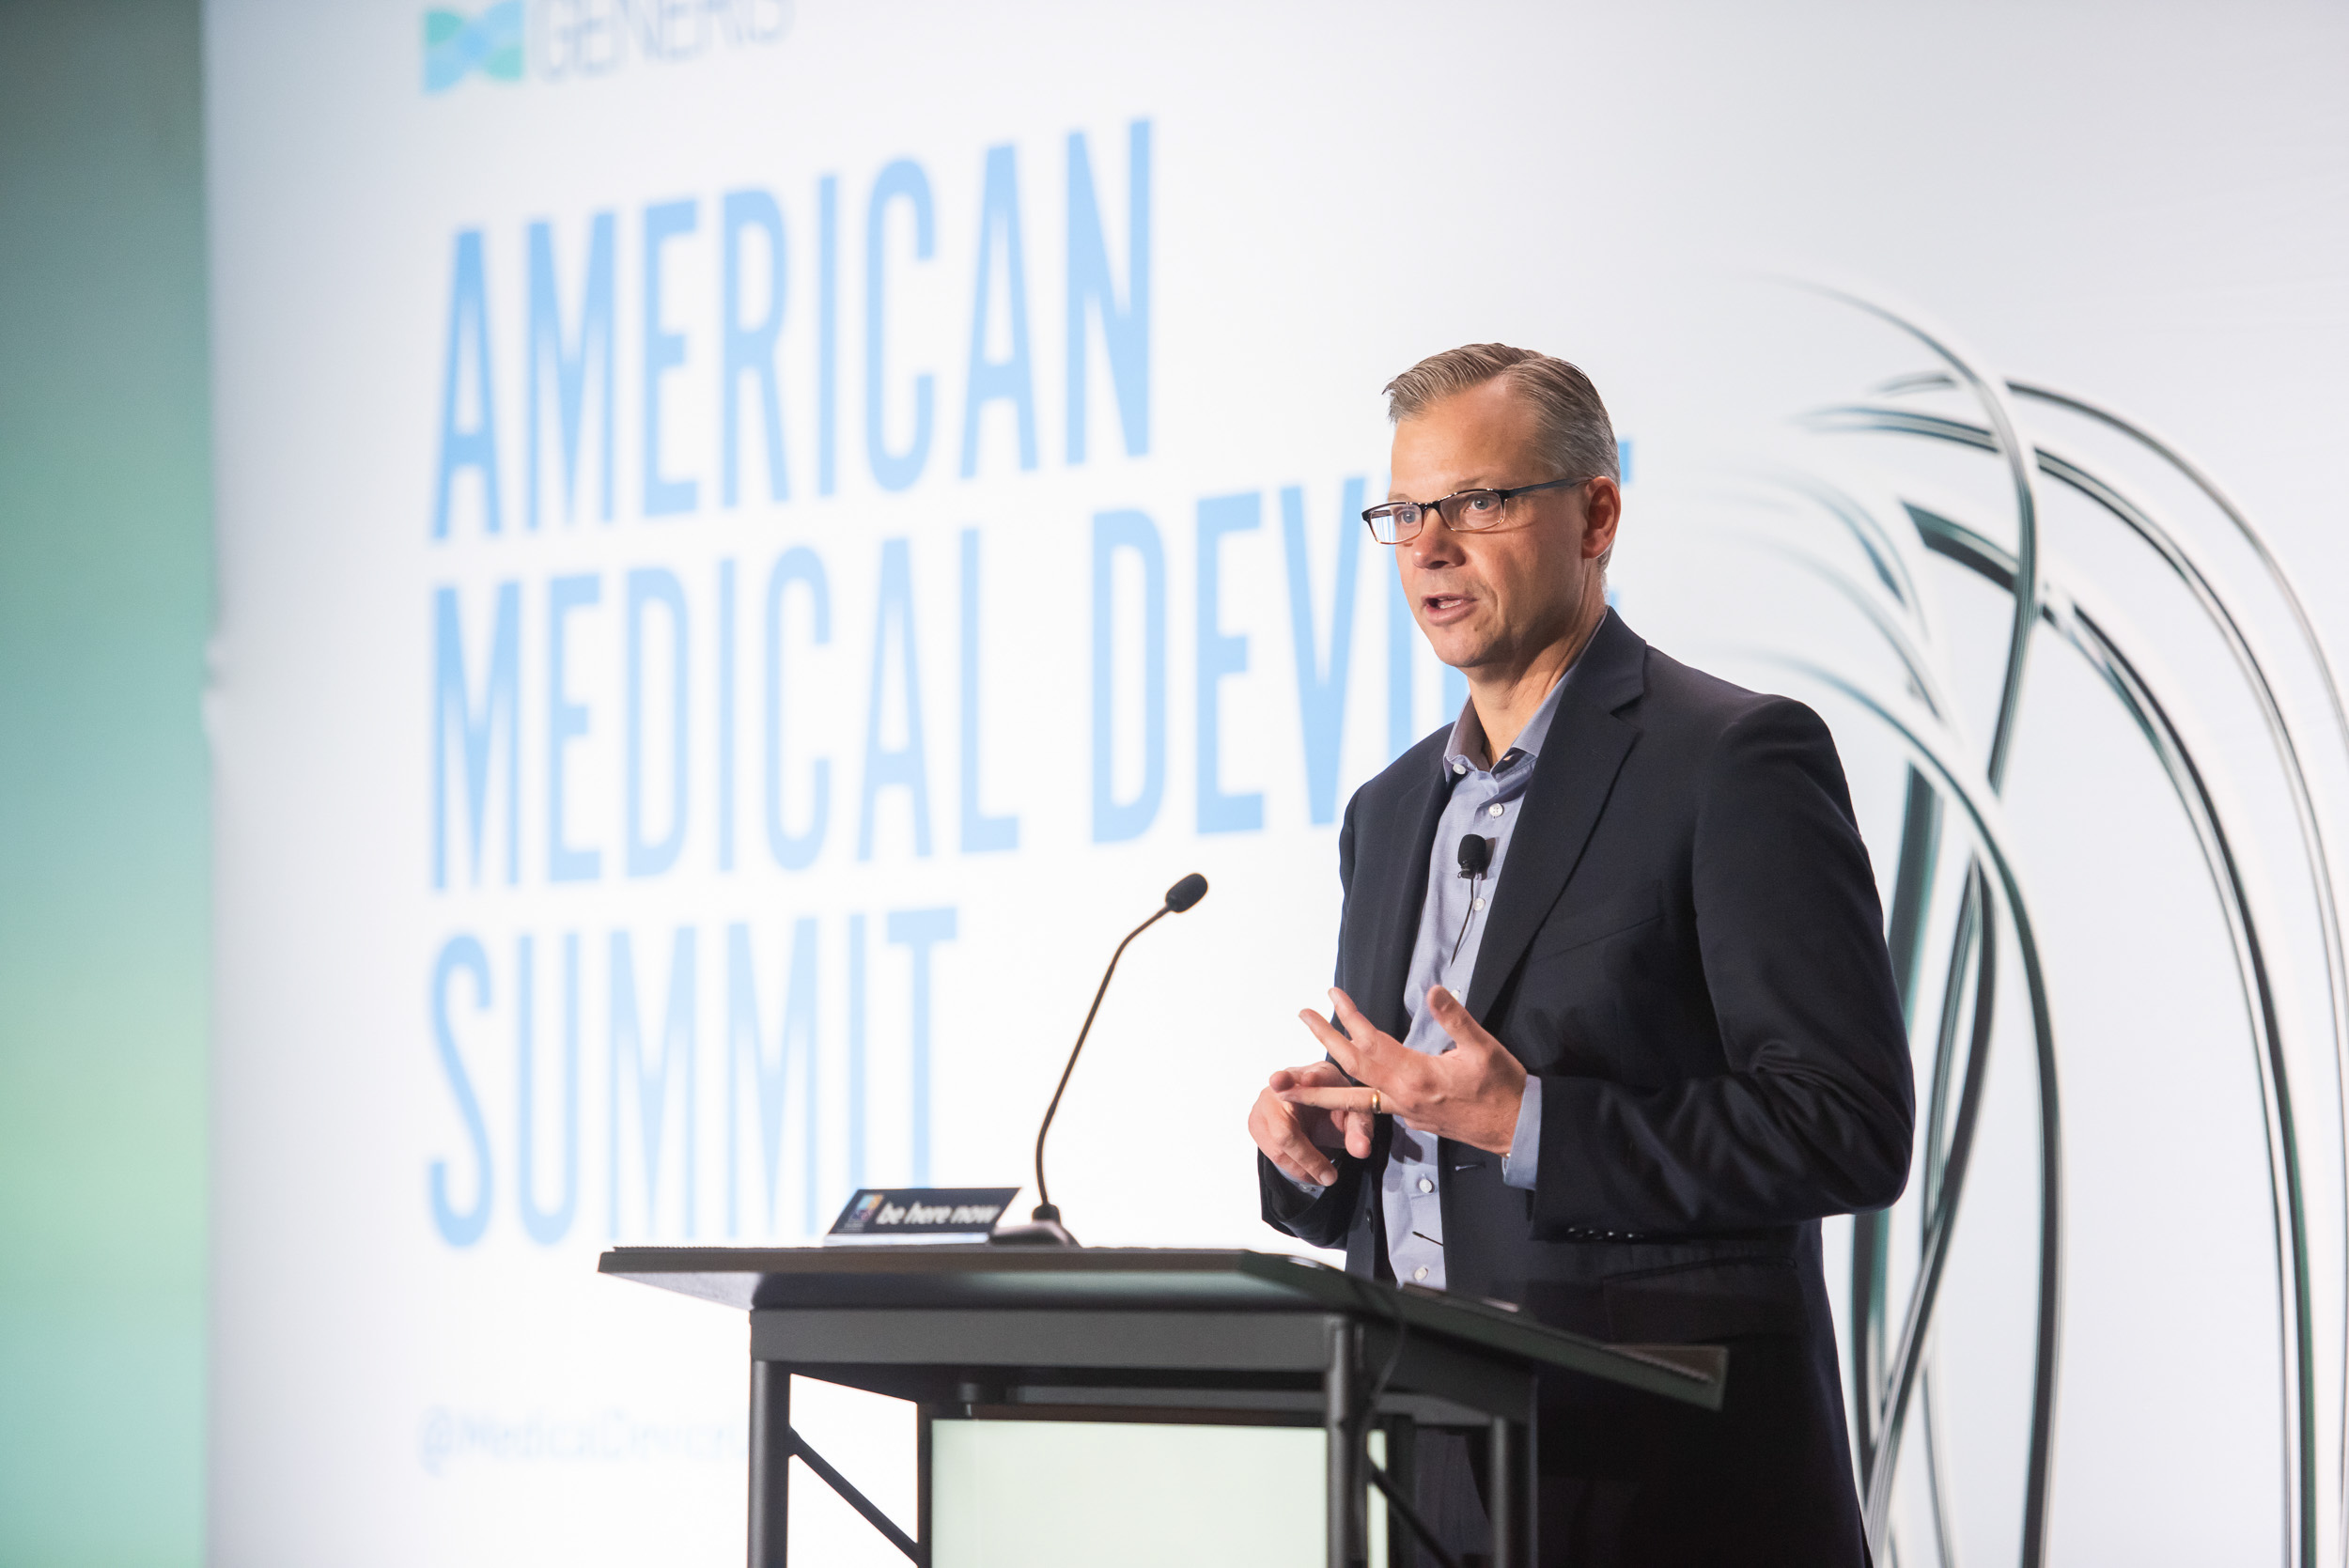 181024 - American Medical Device Summit - mark campbell photography-15_Resized_Resized.jpg